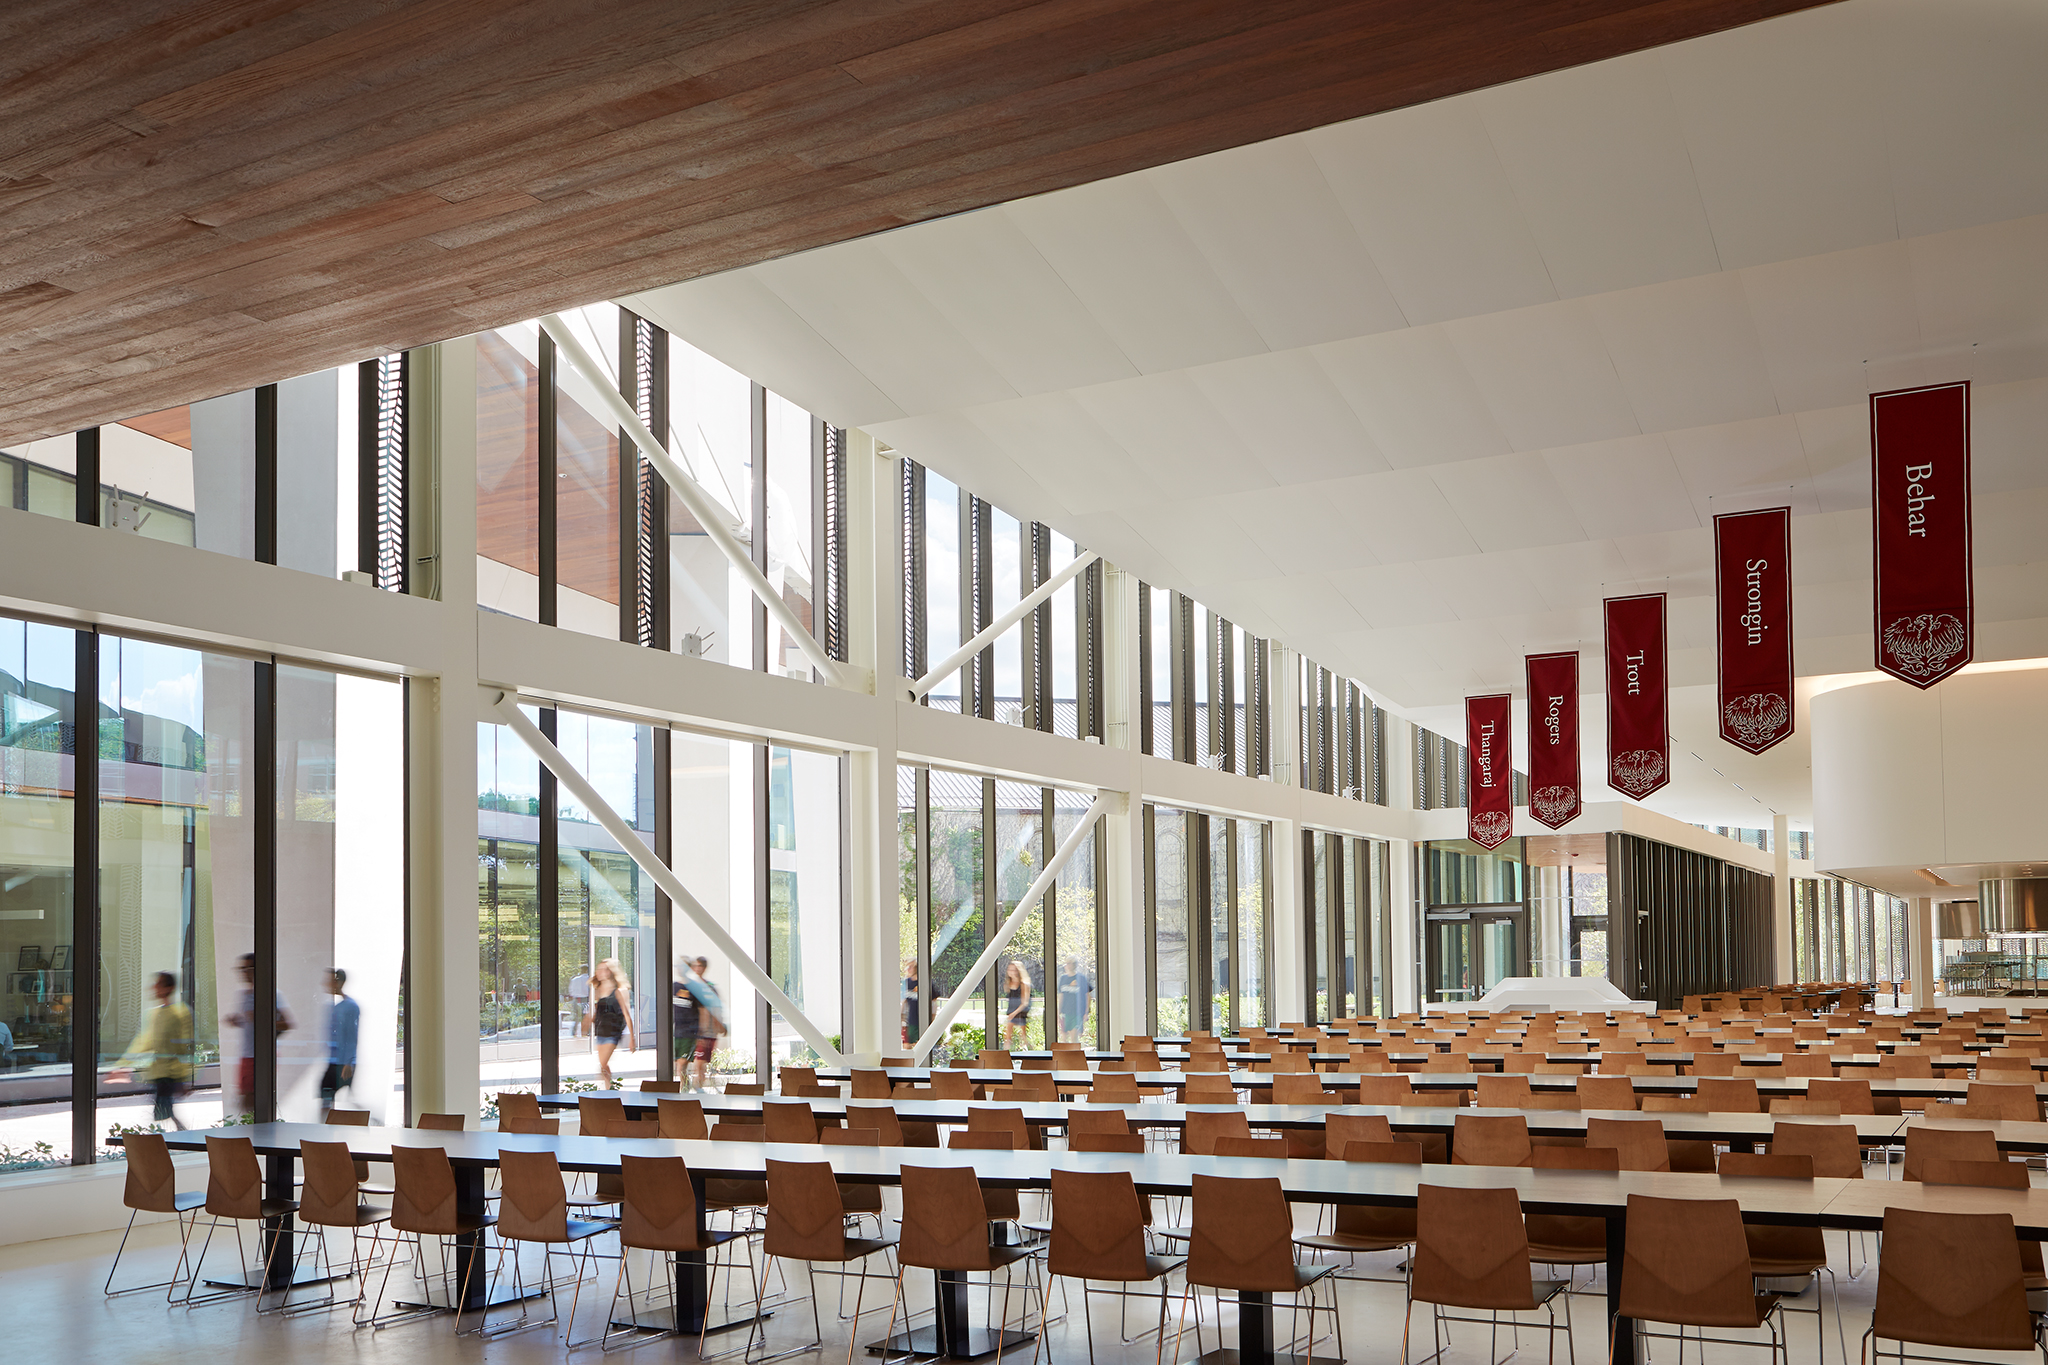 University of chicago opens campus north residential for U of t dining hall hours